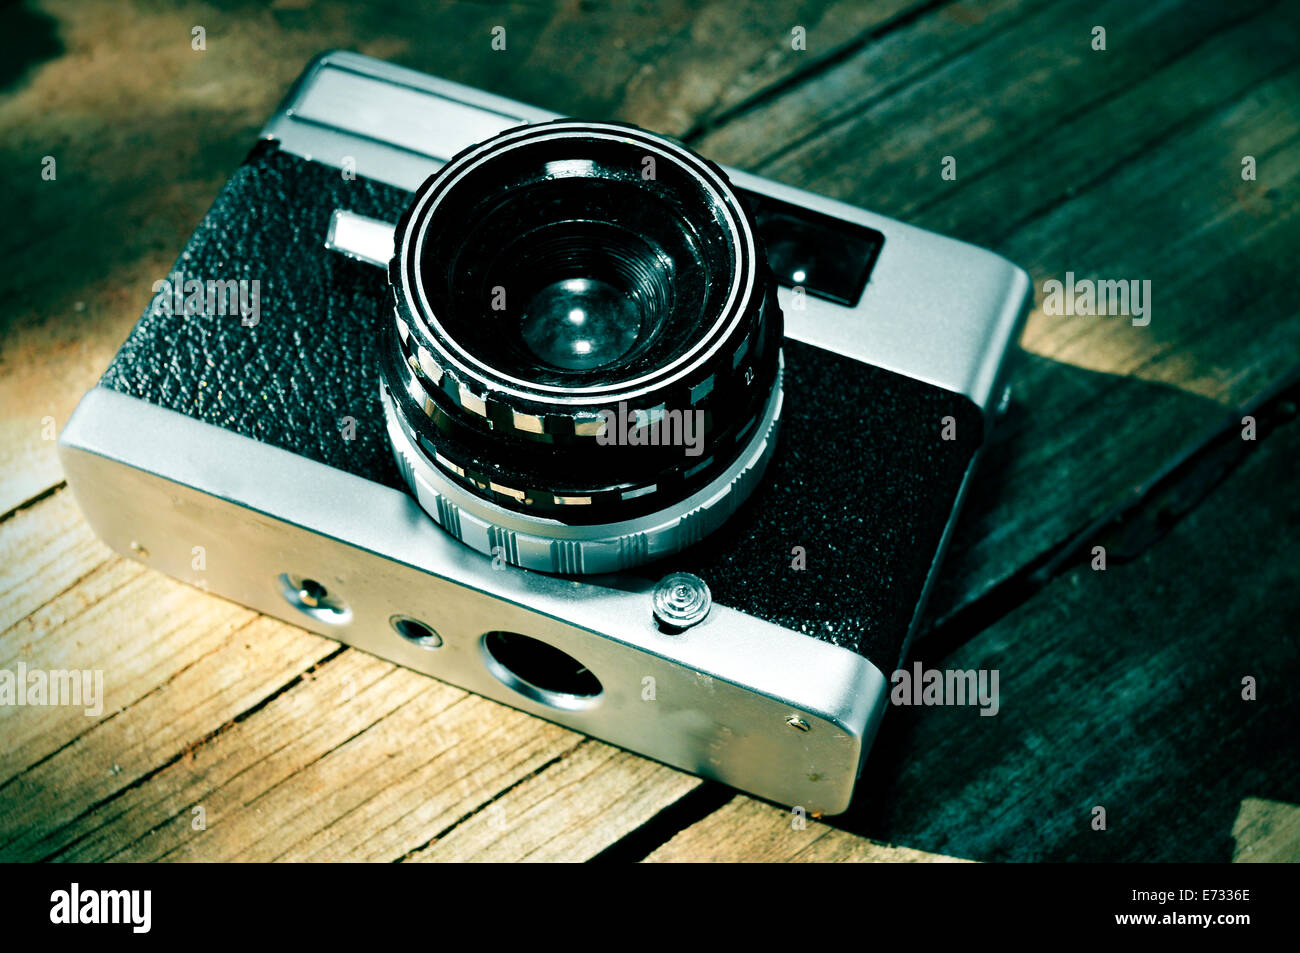 an old camera on a rustic wooden surface - Stock Image